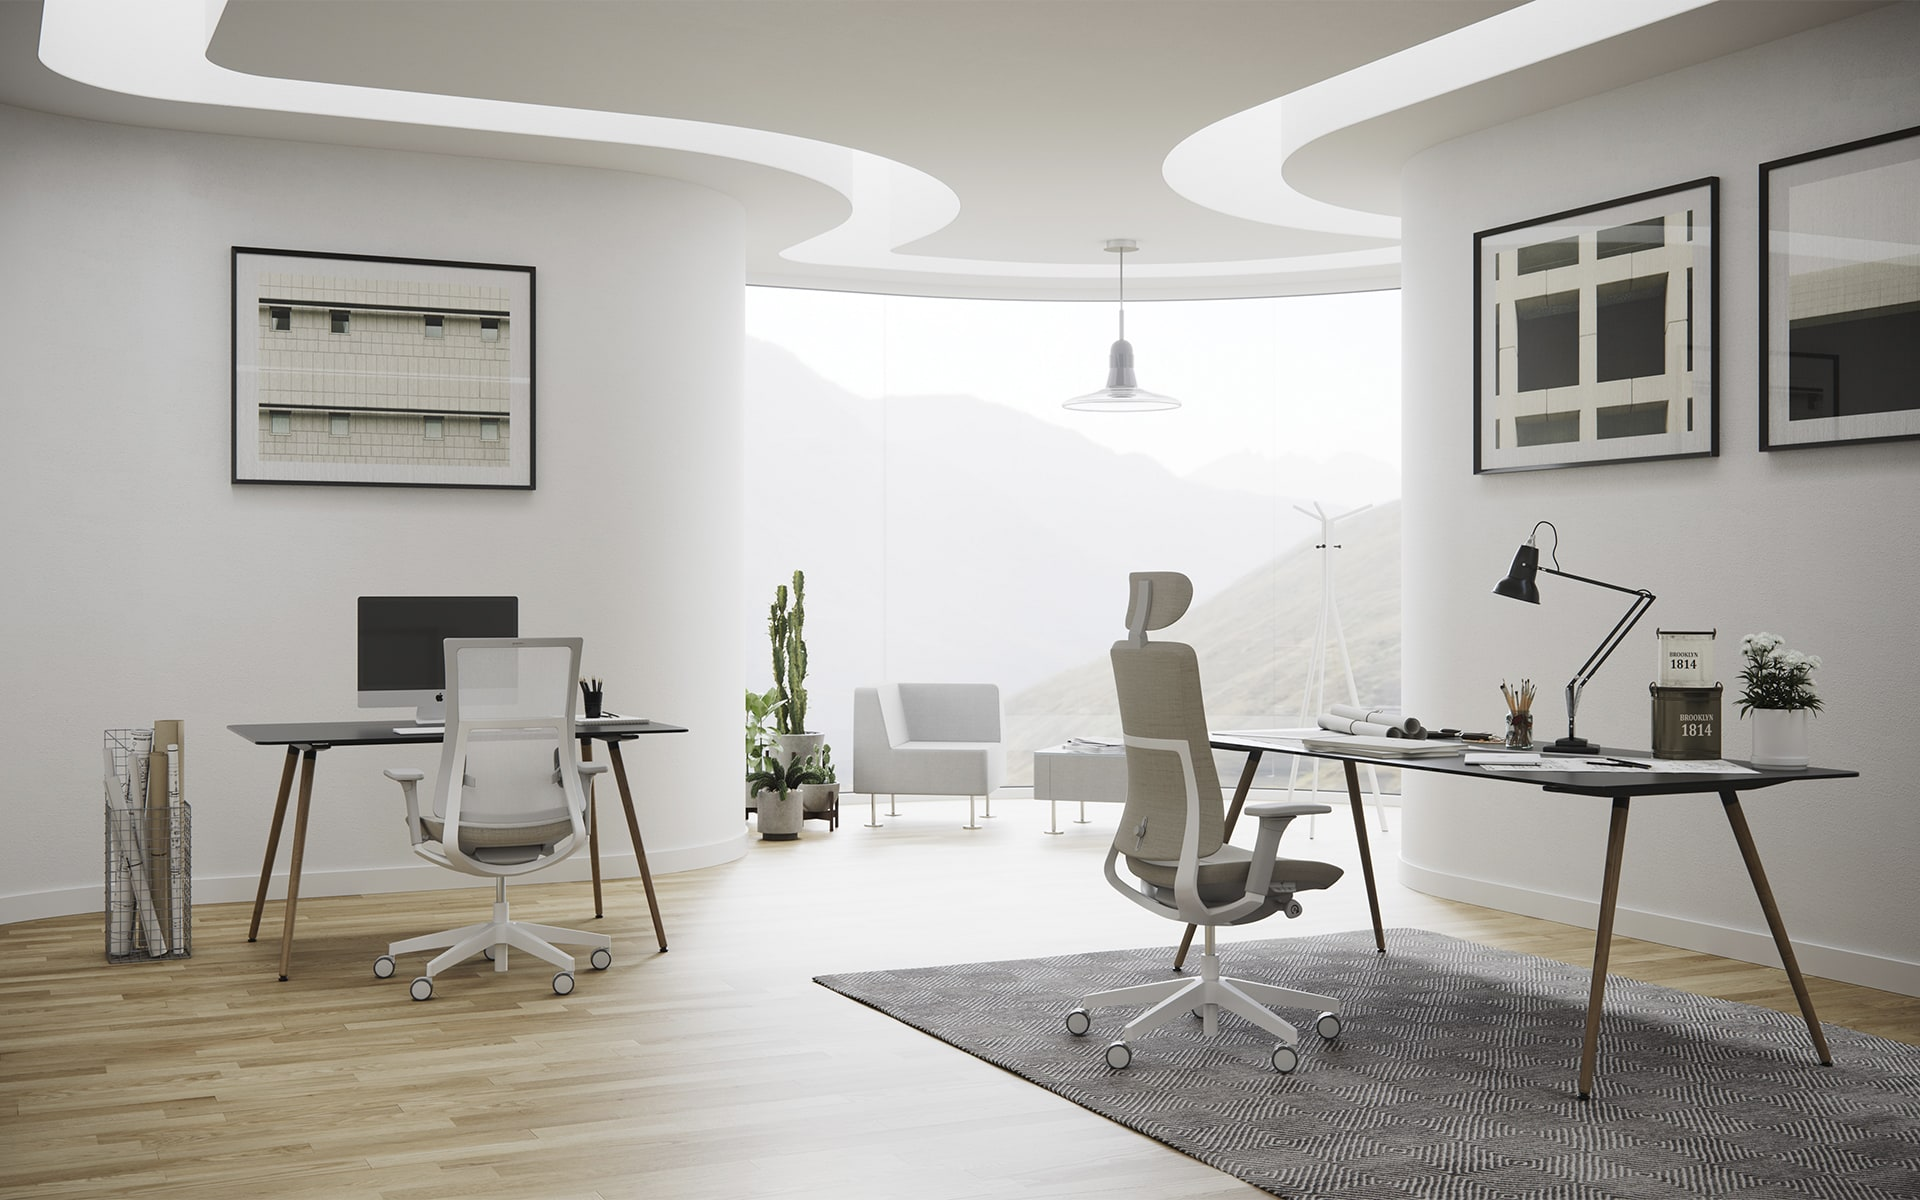 Stylish group workspace with four Profim Violle office chairs by ITO Design in white, salmon and grey